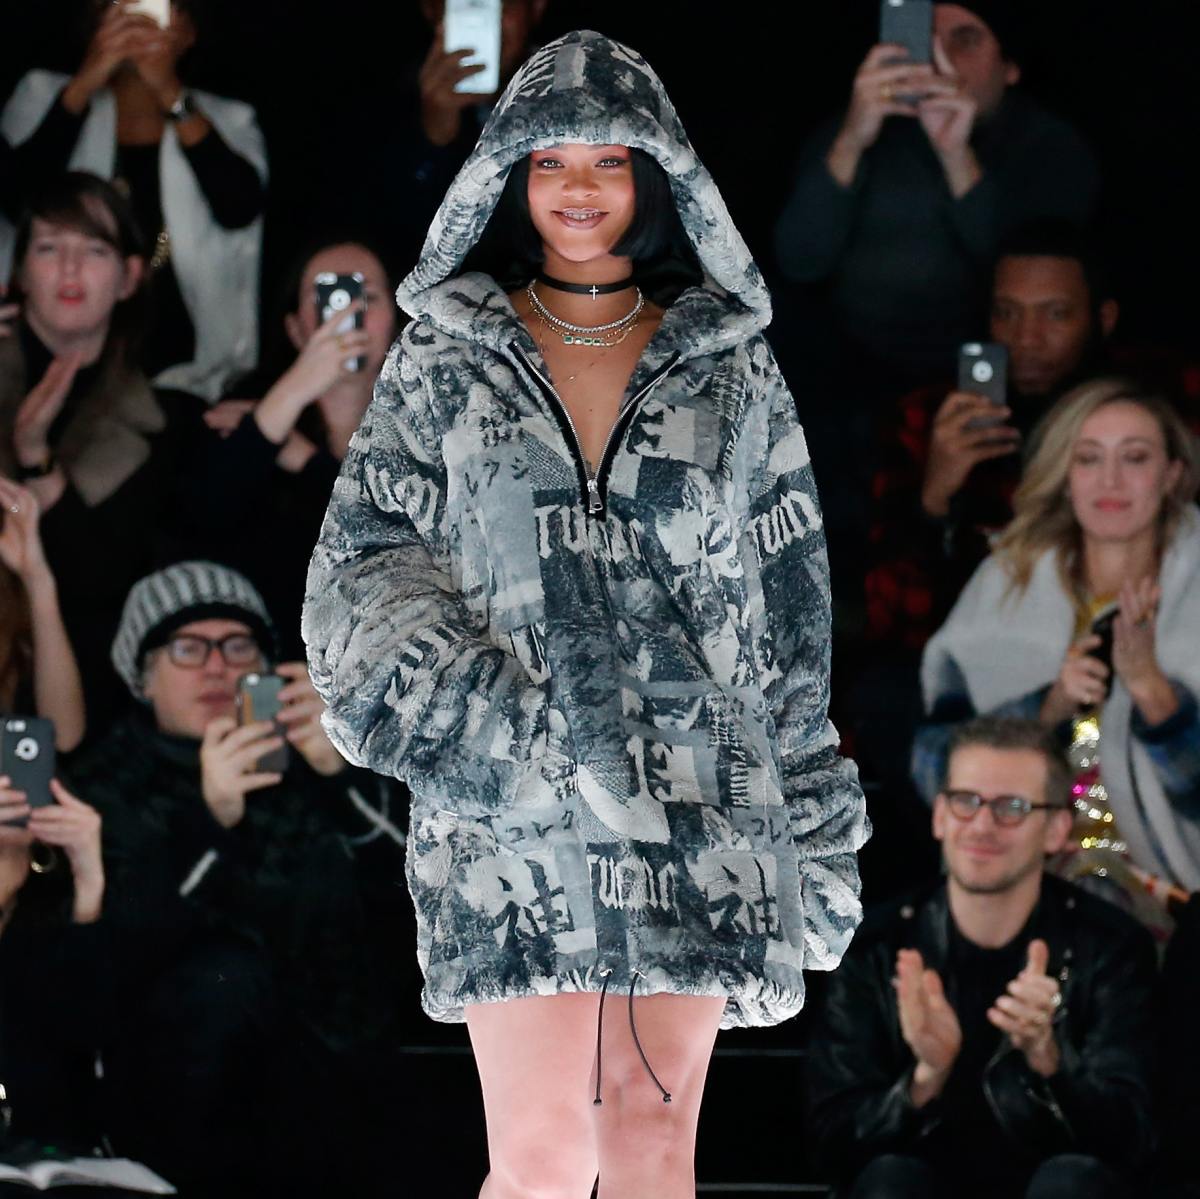 Rihanna Fenty x Puma show at New York Fashion Week